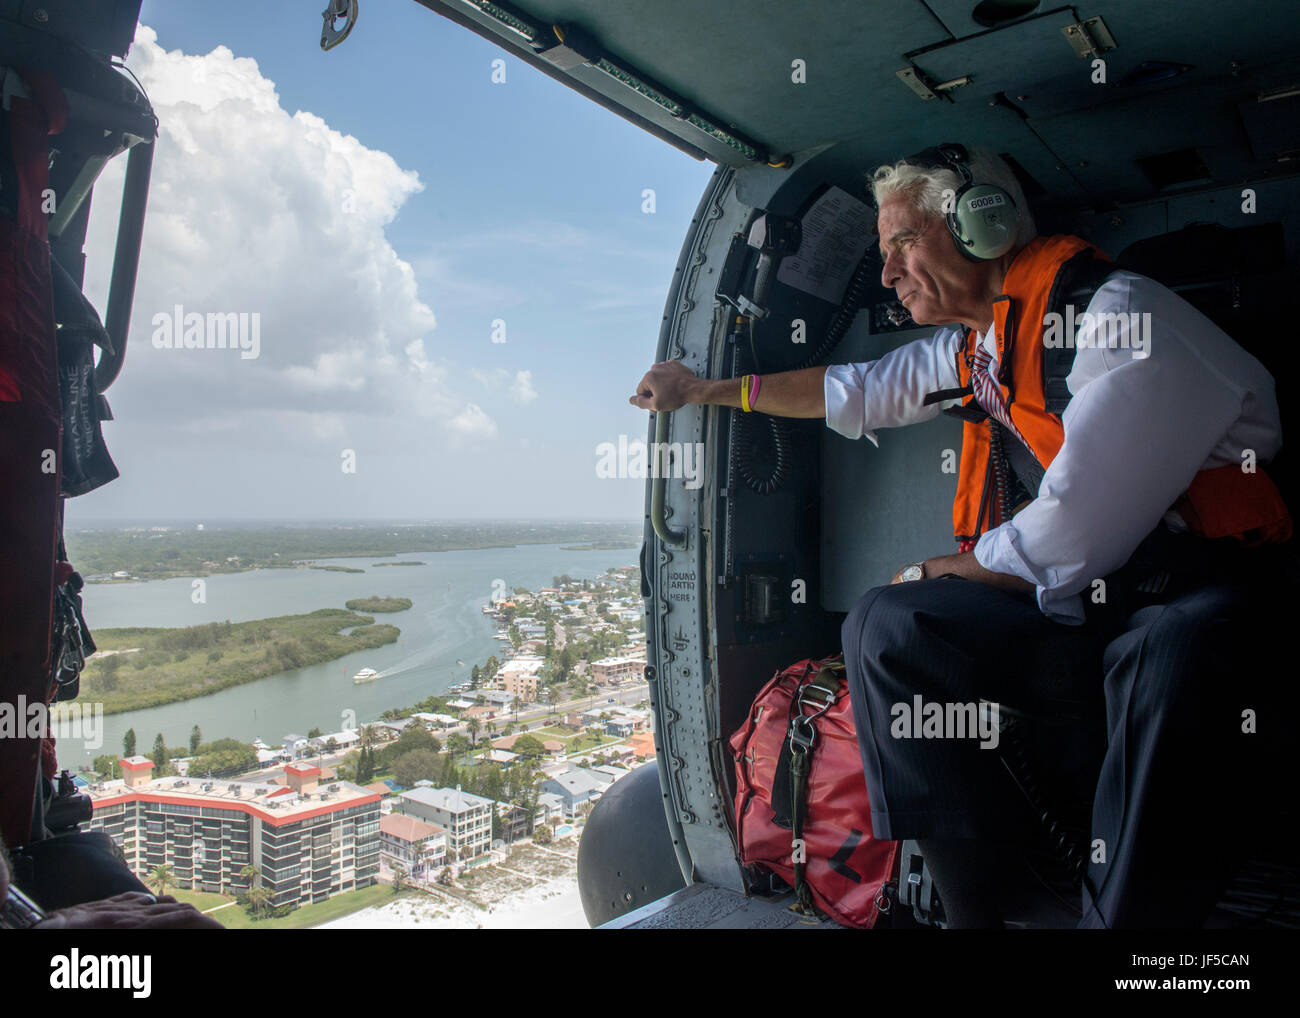 Congressman Charlie Crist, U.S. Representative for Florida's 13th District, keeps a eye on the coastline during - Stock Image